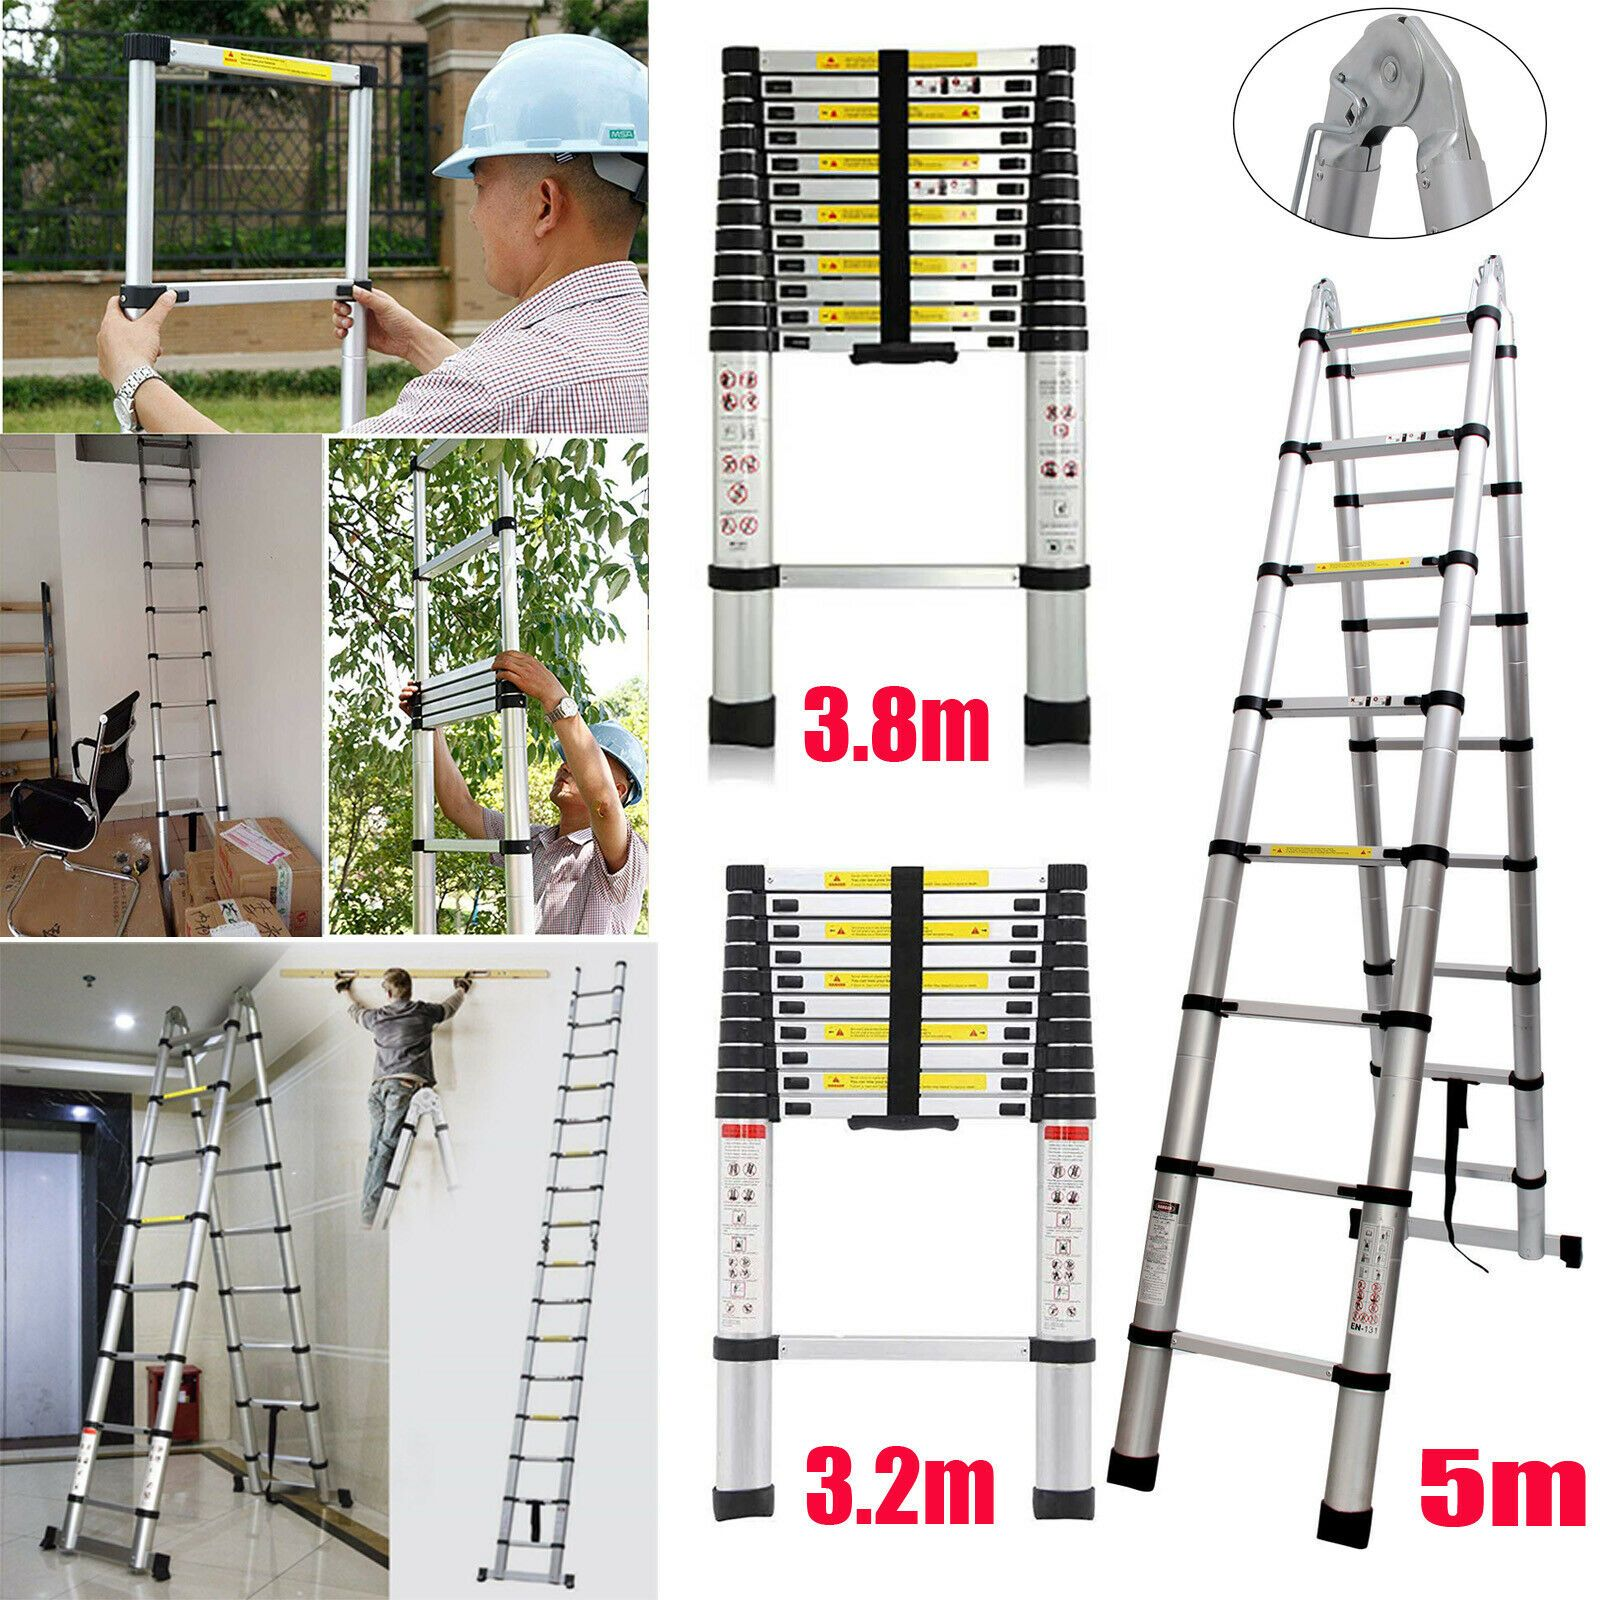 En131 10 5ft 12 5ft 16 5ft Telescopic Extension Aluminum Step Ladder Folding Usa Ladder Decor Ladderdecor In 2020 Ladder Decor Ladder Decor